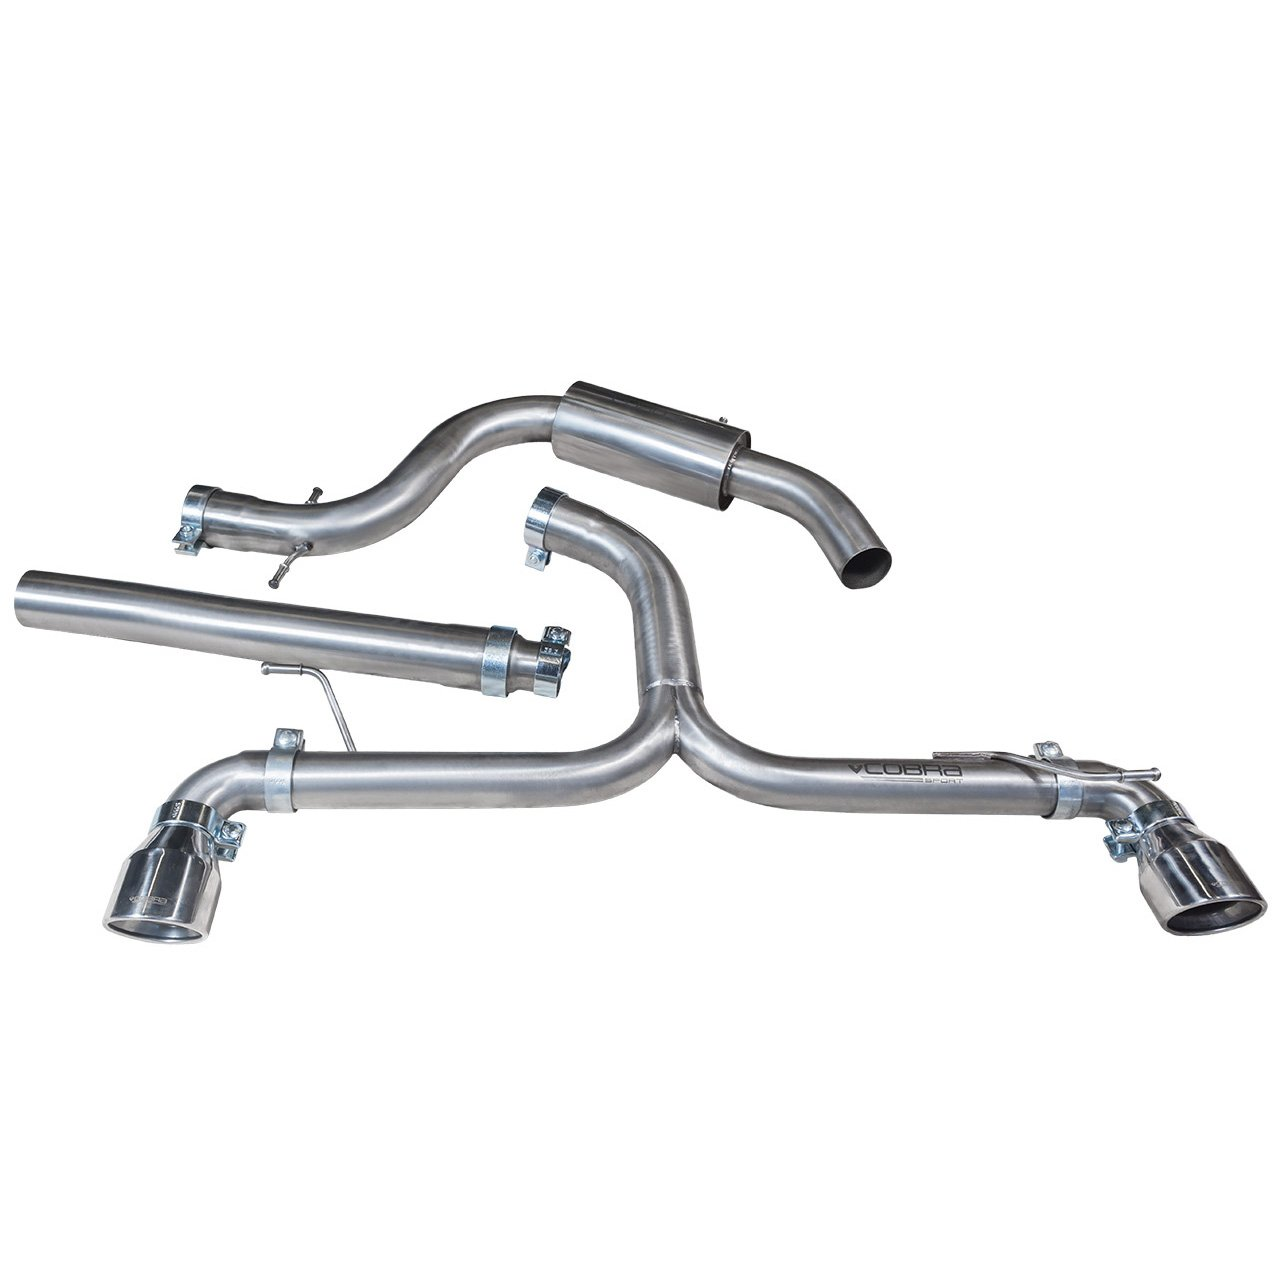 VW Golf GTD (Mk6) 2.0 TDI (5K) (09-13) Venom Box Delete GTI Style Cat Back Performance Exhaust